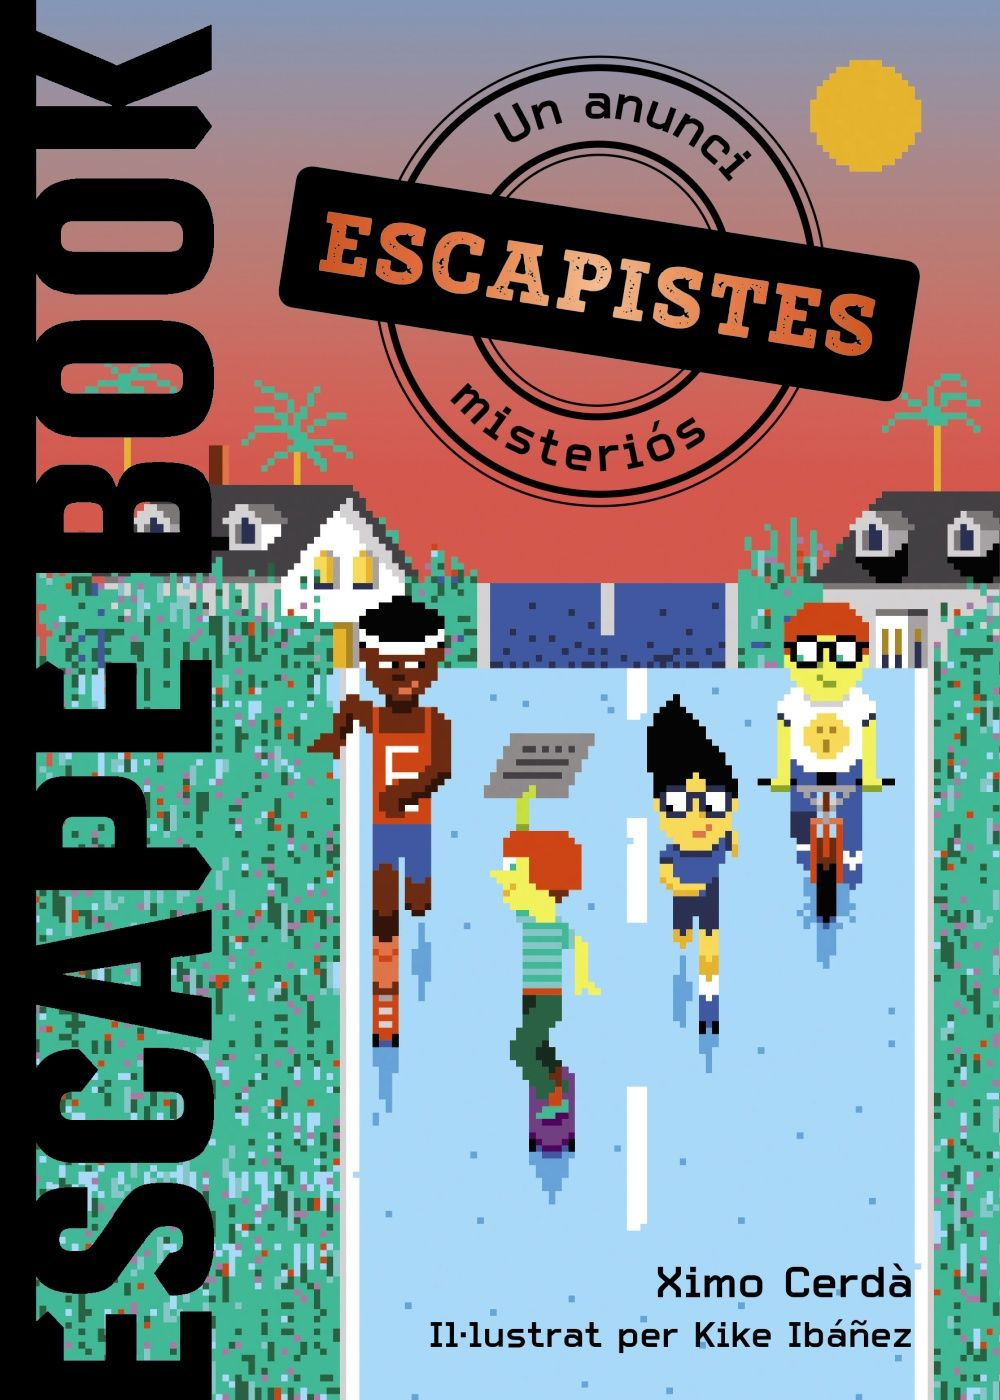 ESCAPE BOOK ESCAPISTES UN ANUNCI MISTERIOS